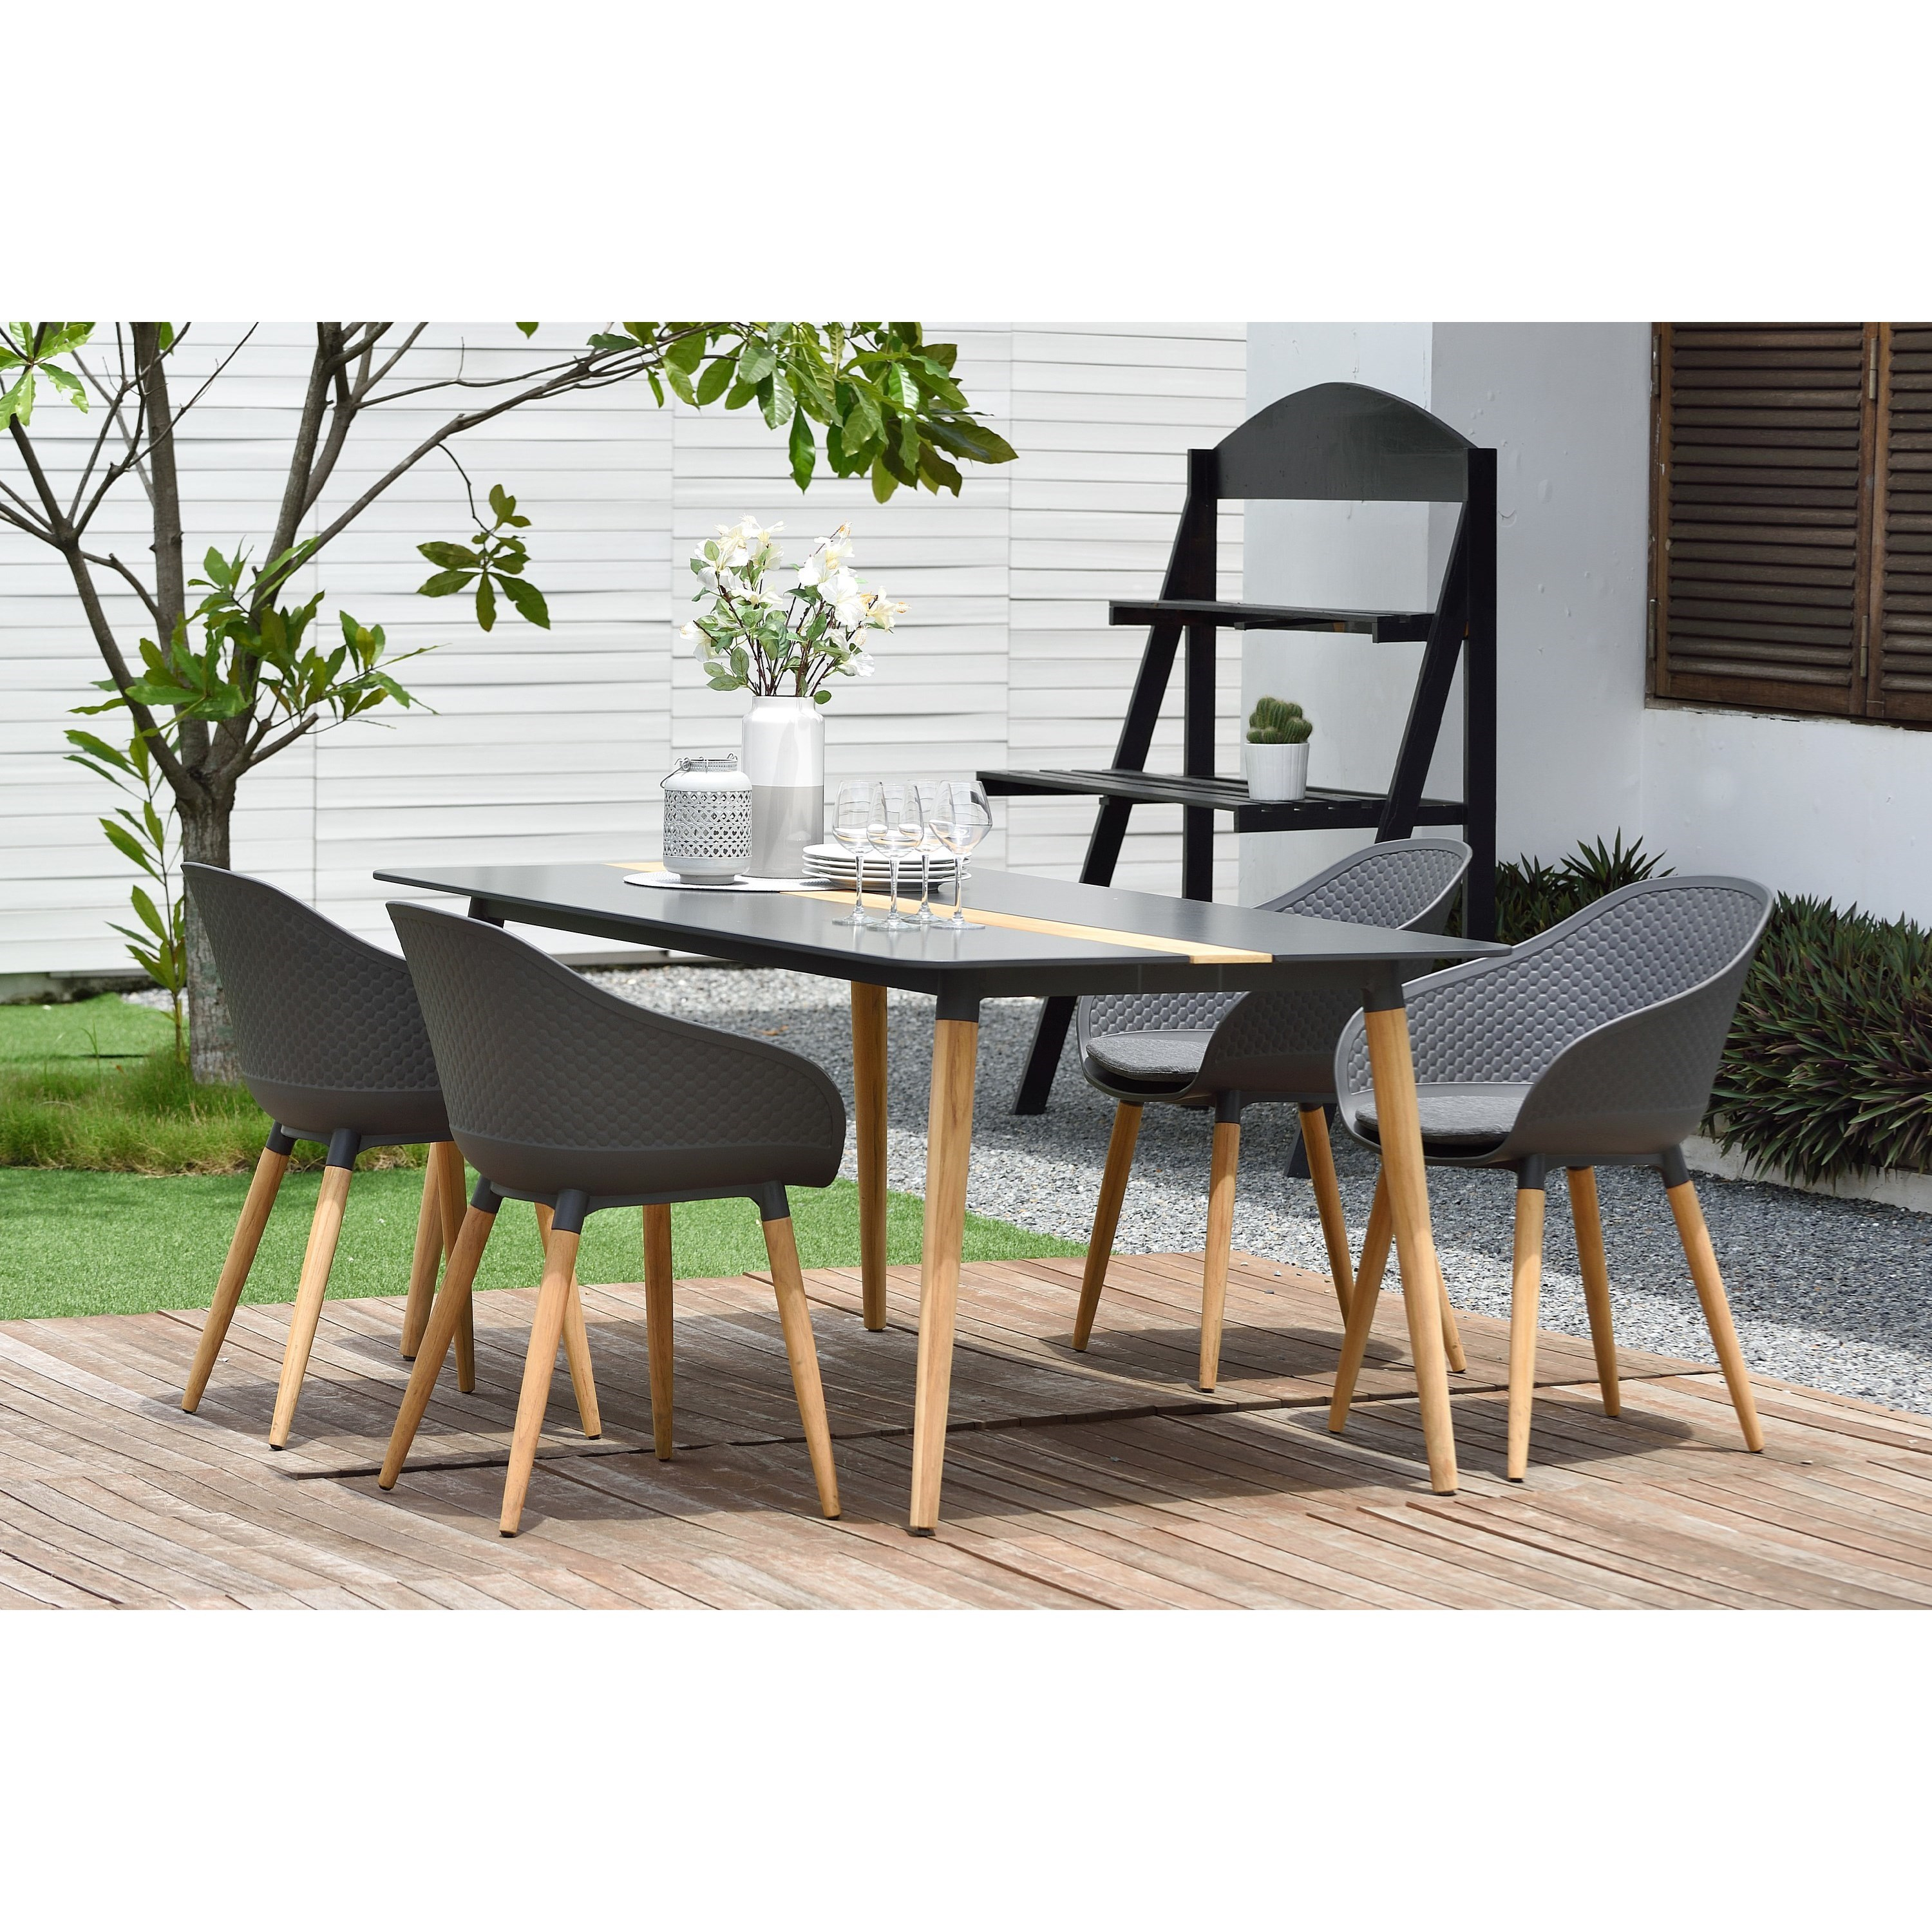 Ipanema 5-Piece Outdoor Dining Set by Armen Living at Michael Alan Furniture & Design